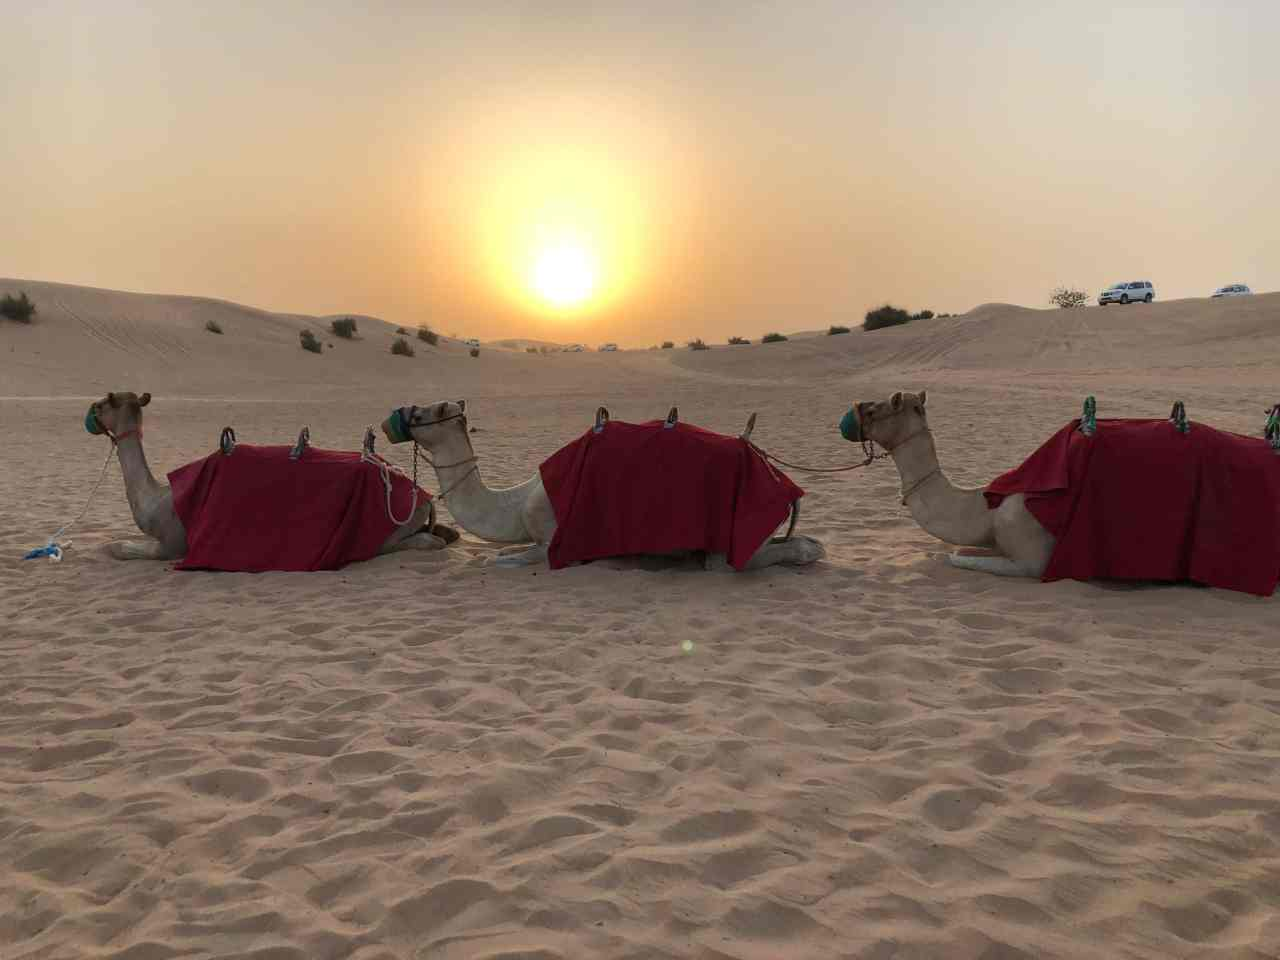 Camels at sunset in the Dubai desert